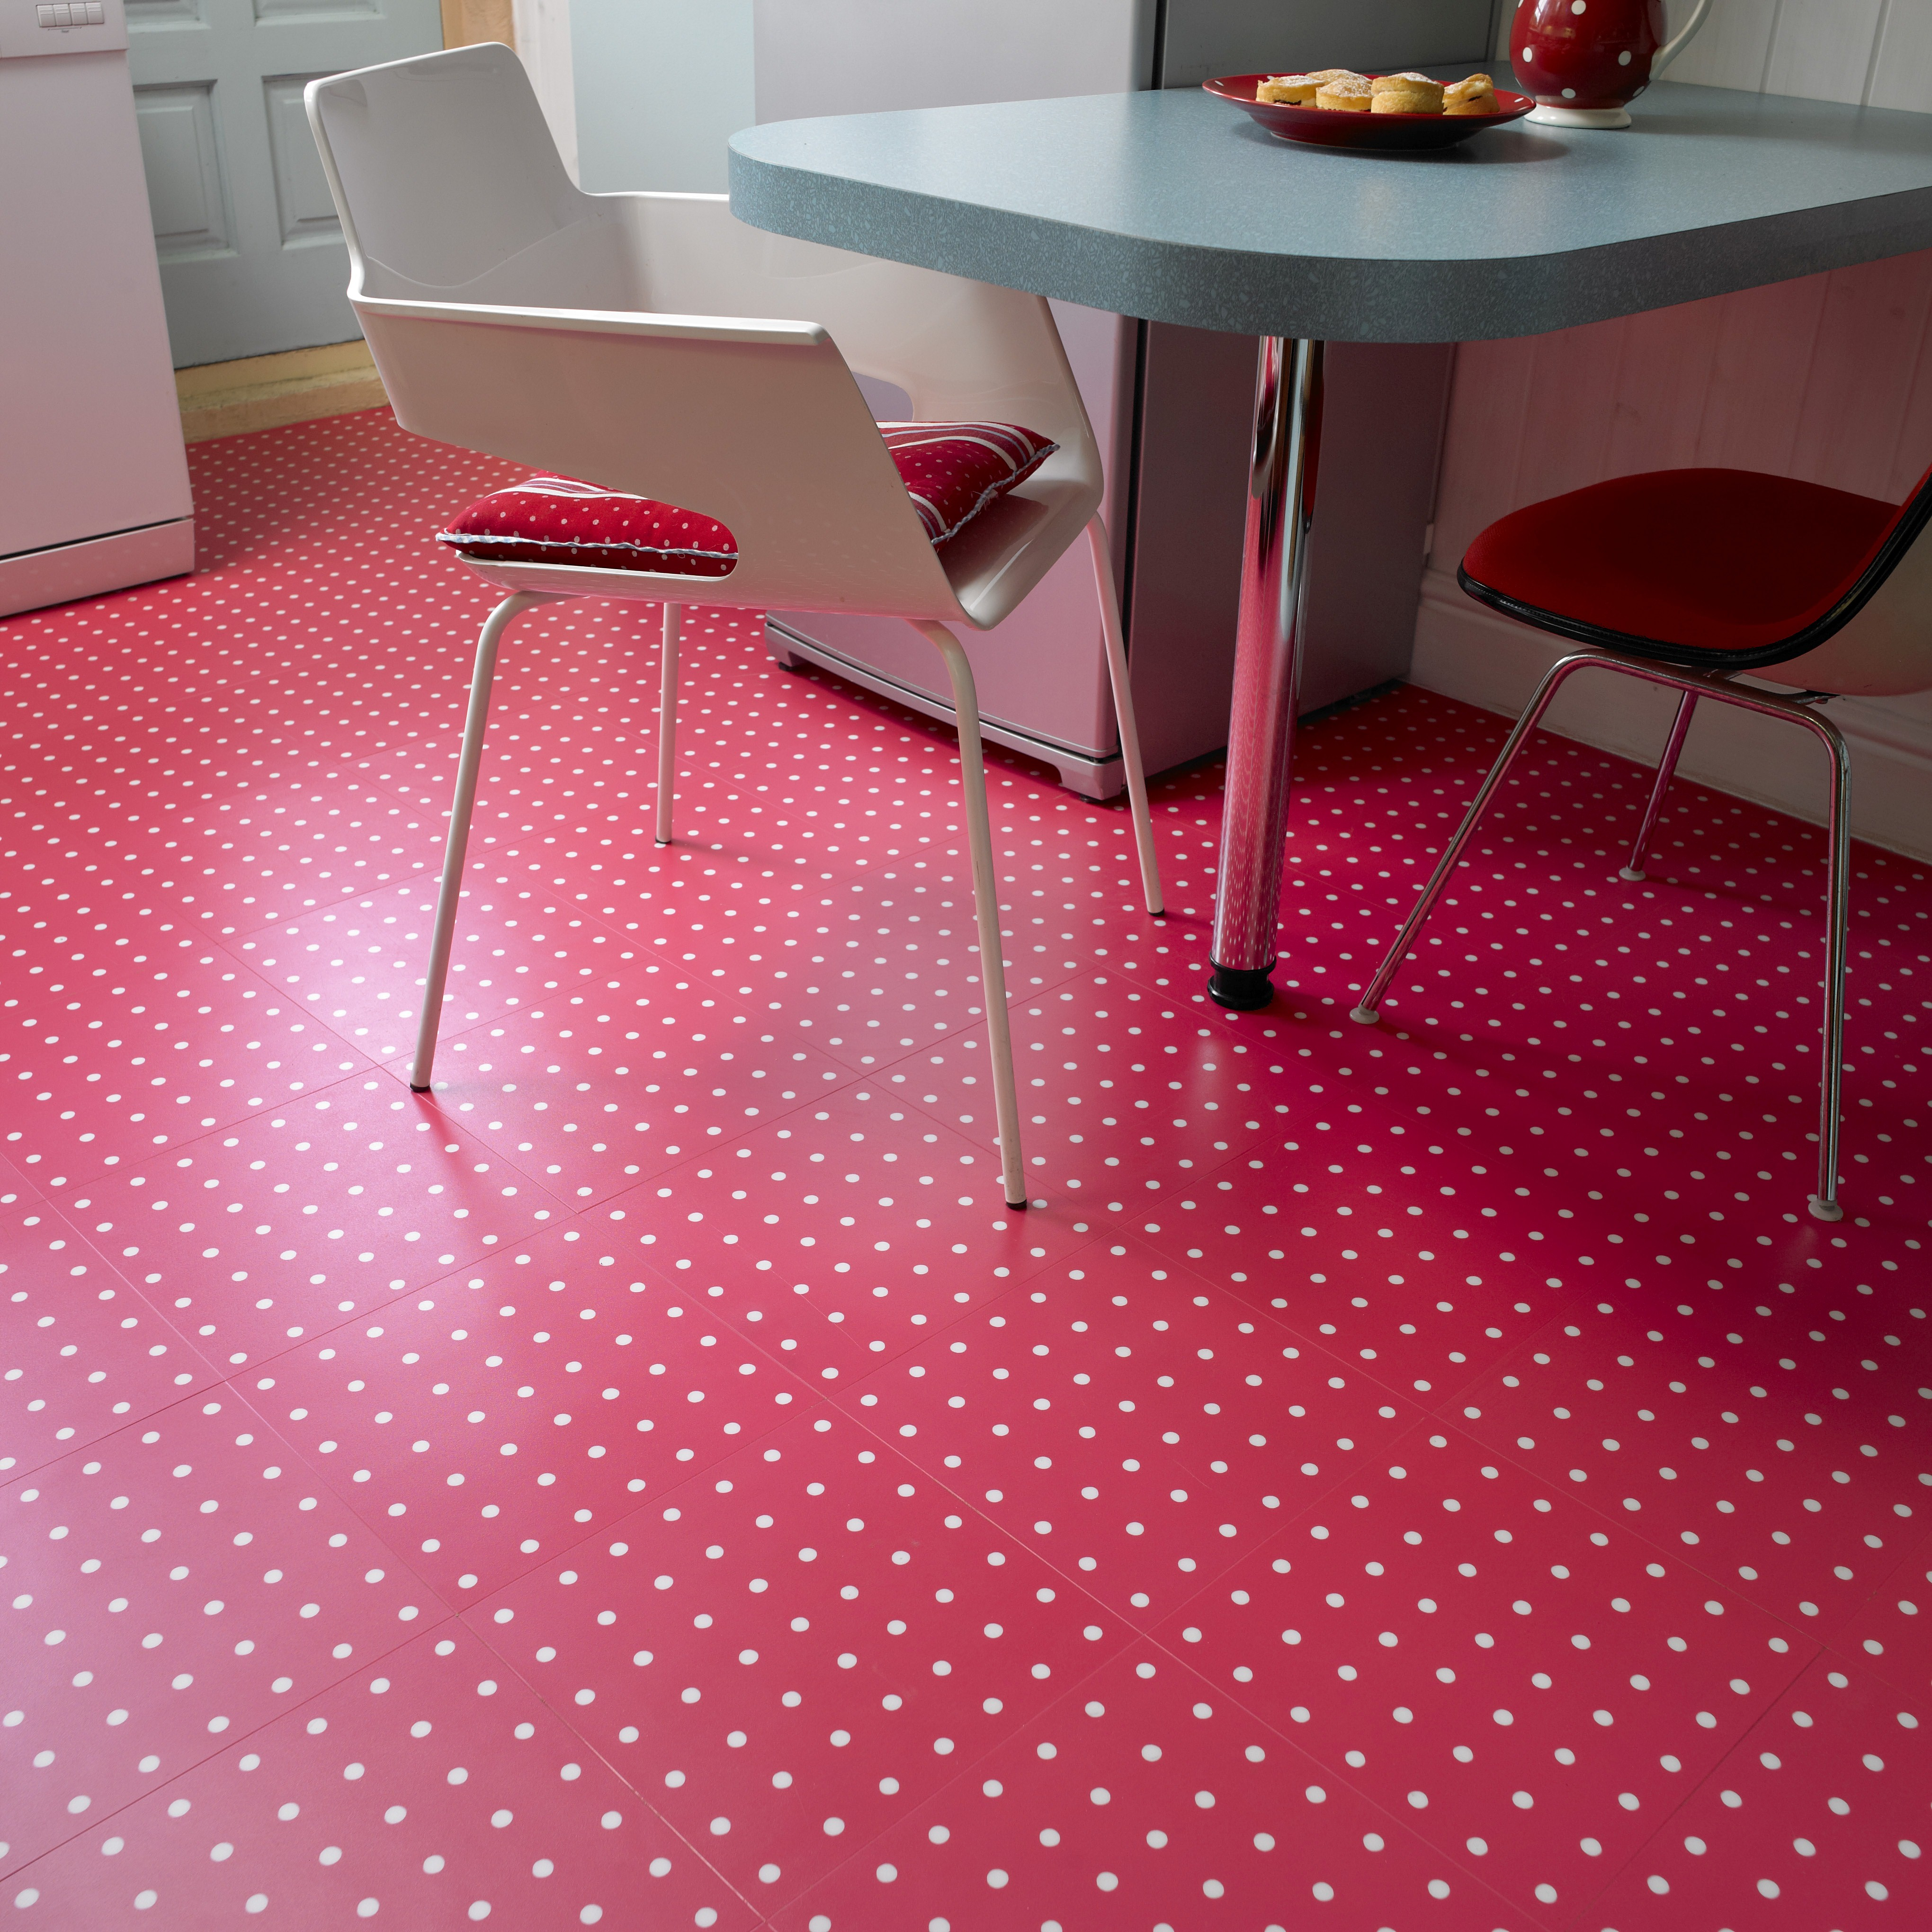 Photos Of Pink Rubber Flooring